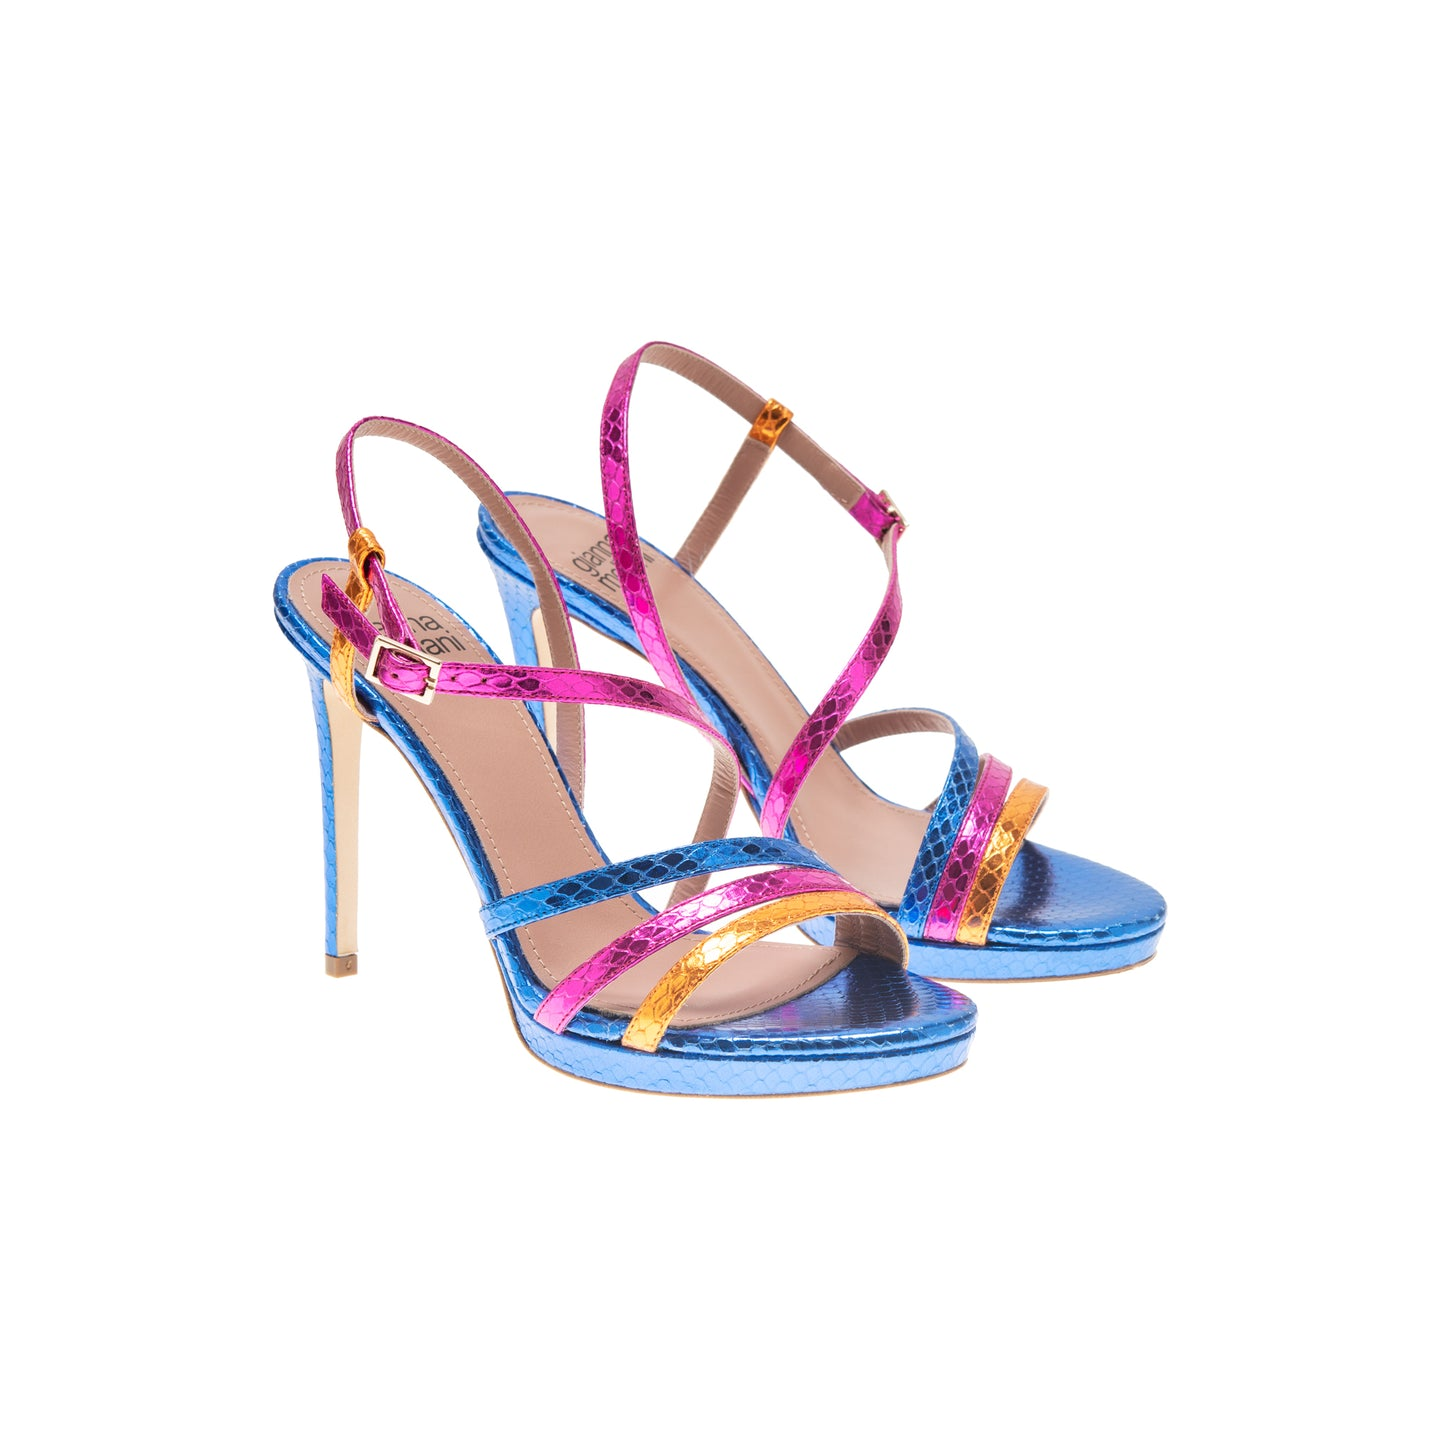 FESTA pyton multi laminated leather sandal